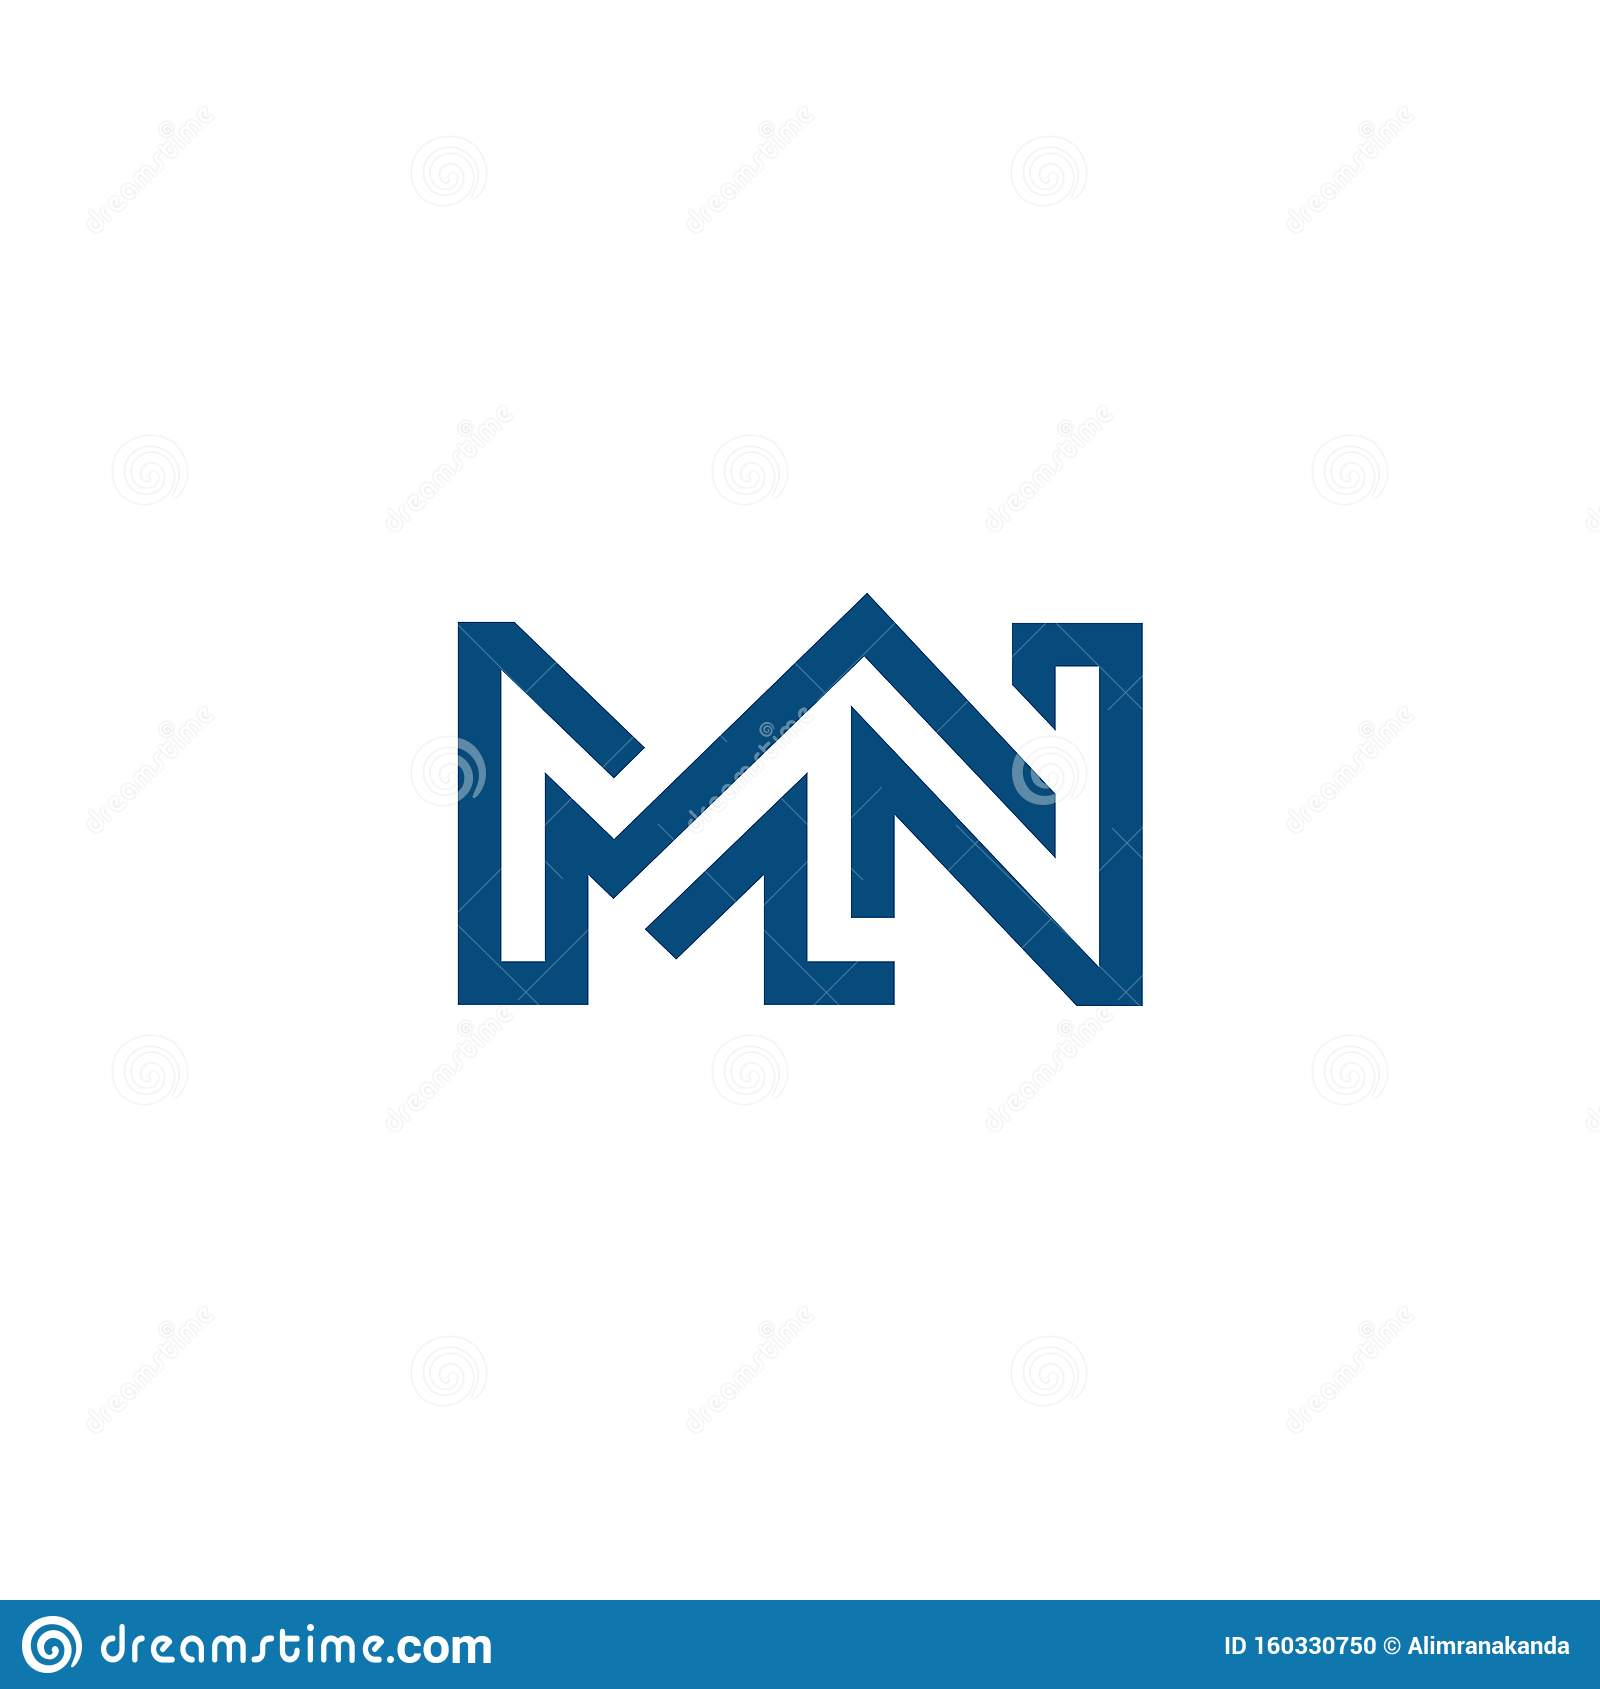 Mn Nm Logo Design Letter Base High Quality Logo Design Stock Vector Illustration Of Icon Initial 160330750